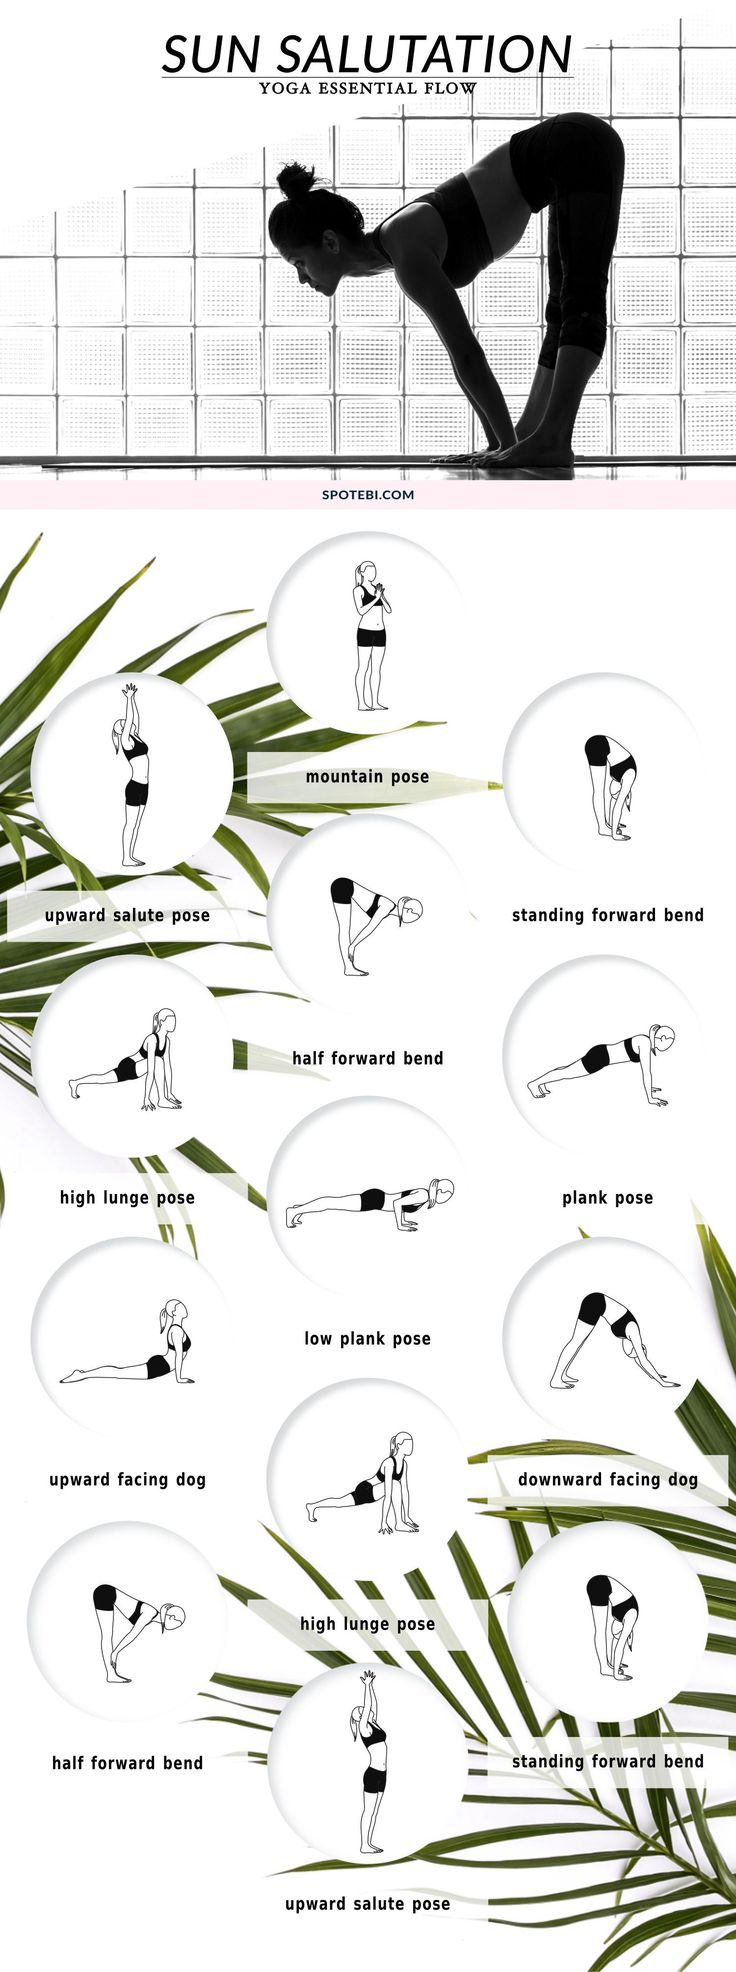 Sun salutation for energising you in the morning.